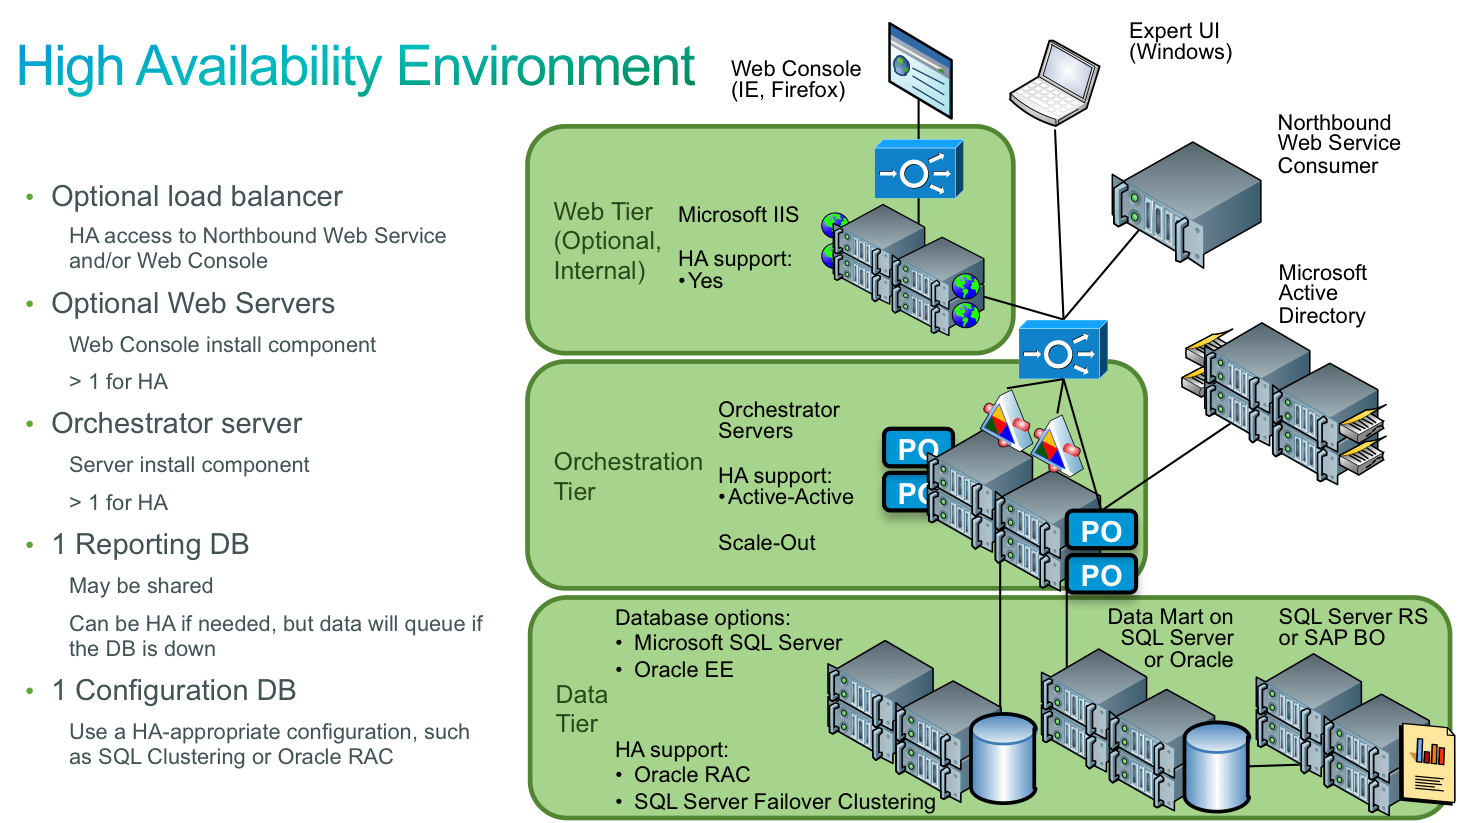 Cpo high availability cisco process orchestrator cisco for Consul high availability